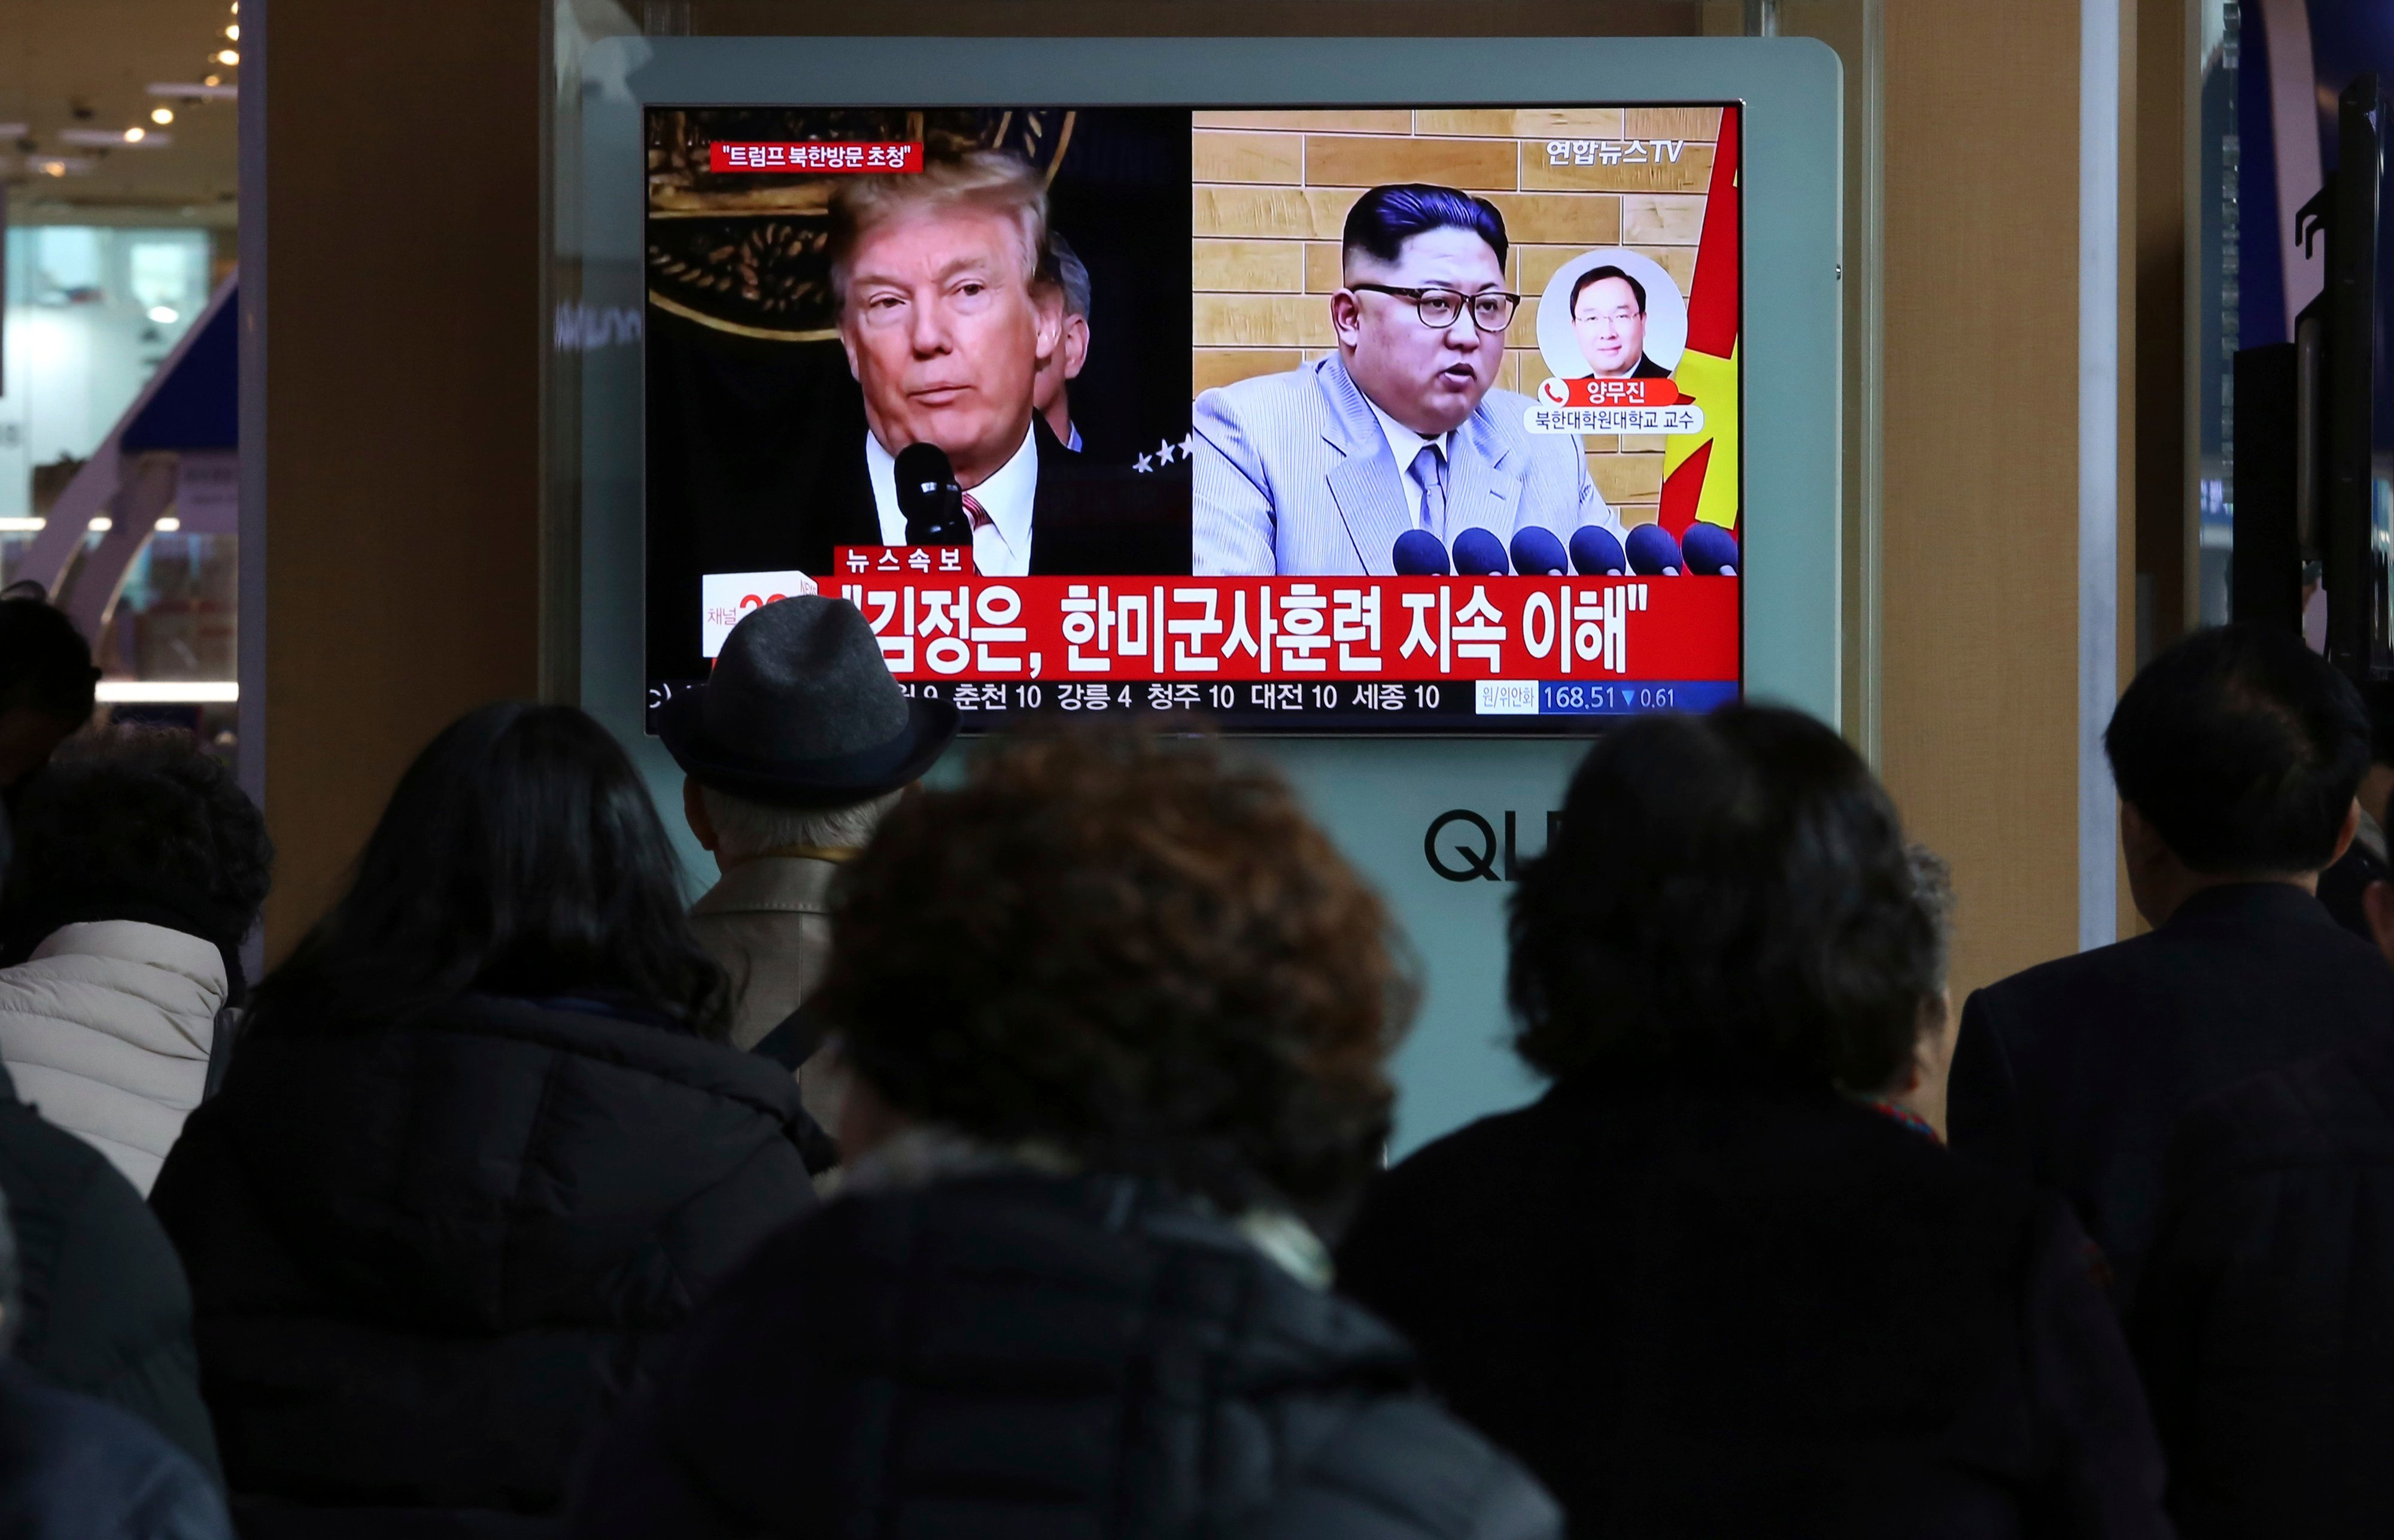 People watch a TV screen showing North Korean leader Kim Jong Un and U.S. President Donald Trump, left, at the Seoul Railway Station in Seoul, South Korea.